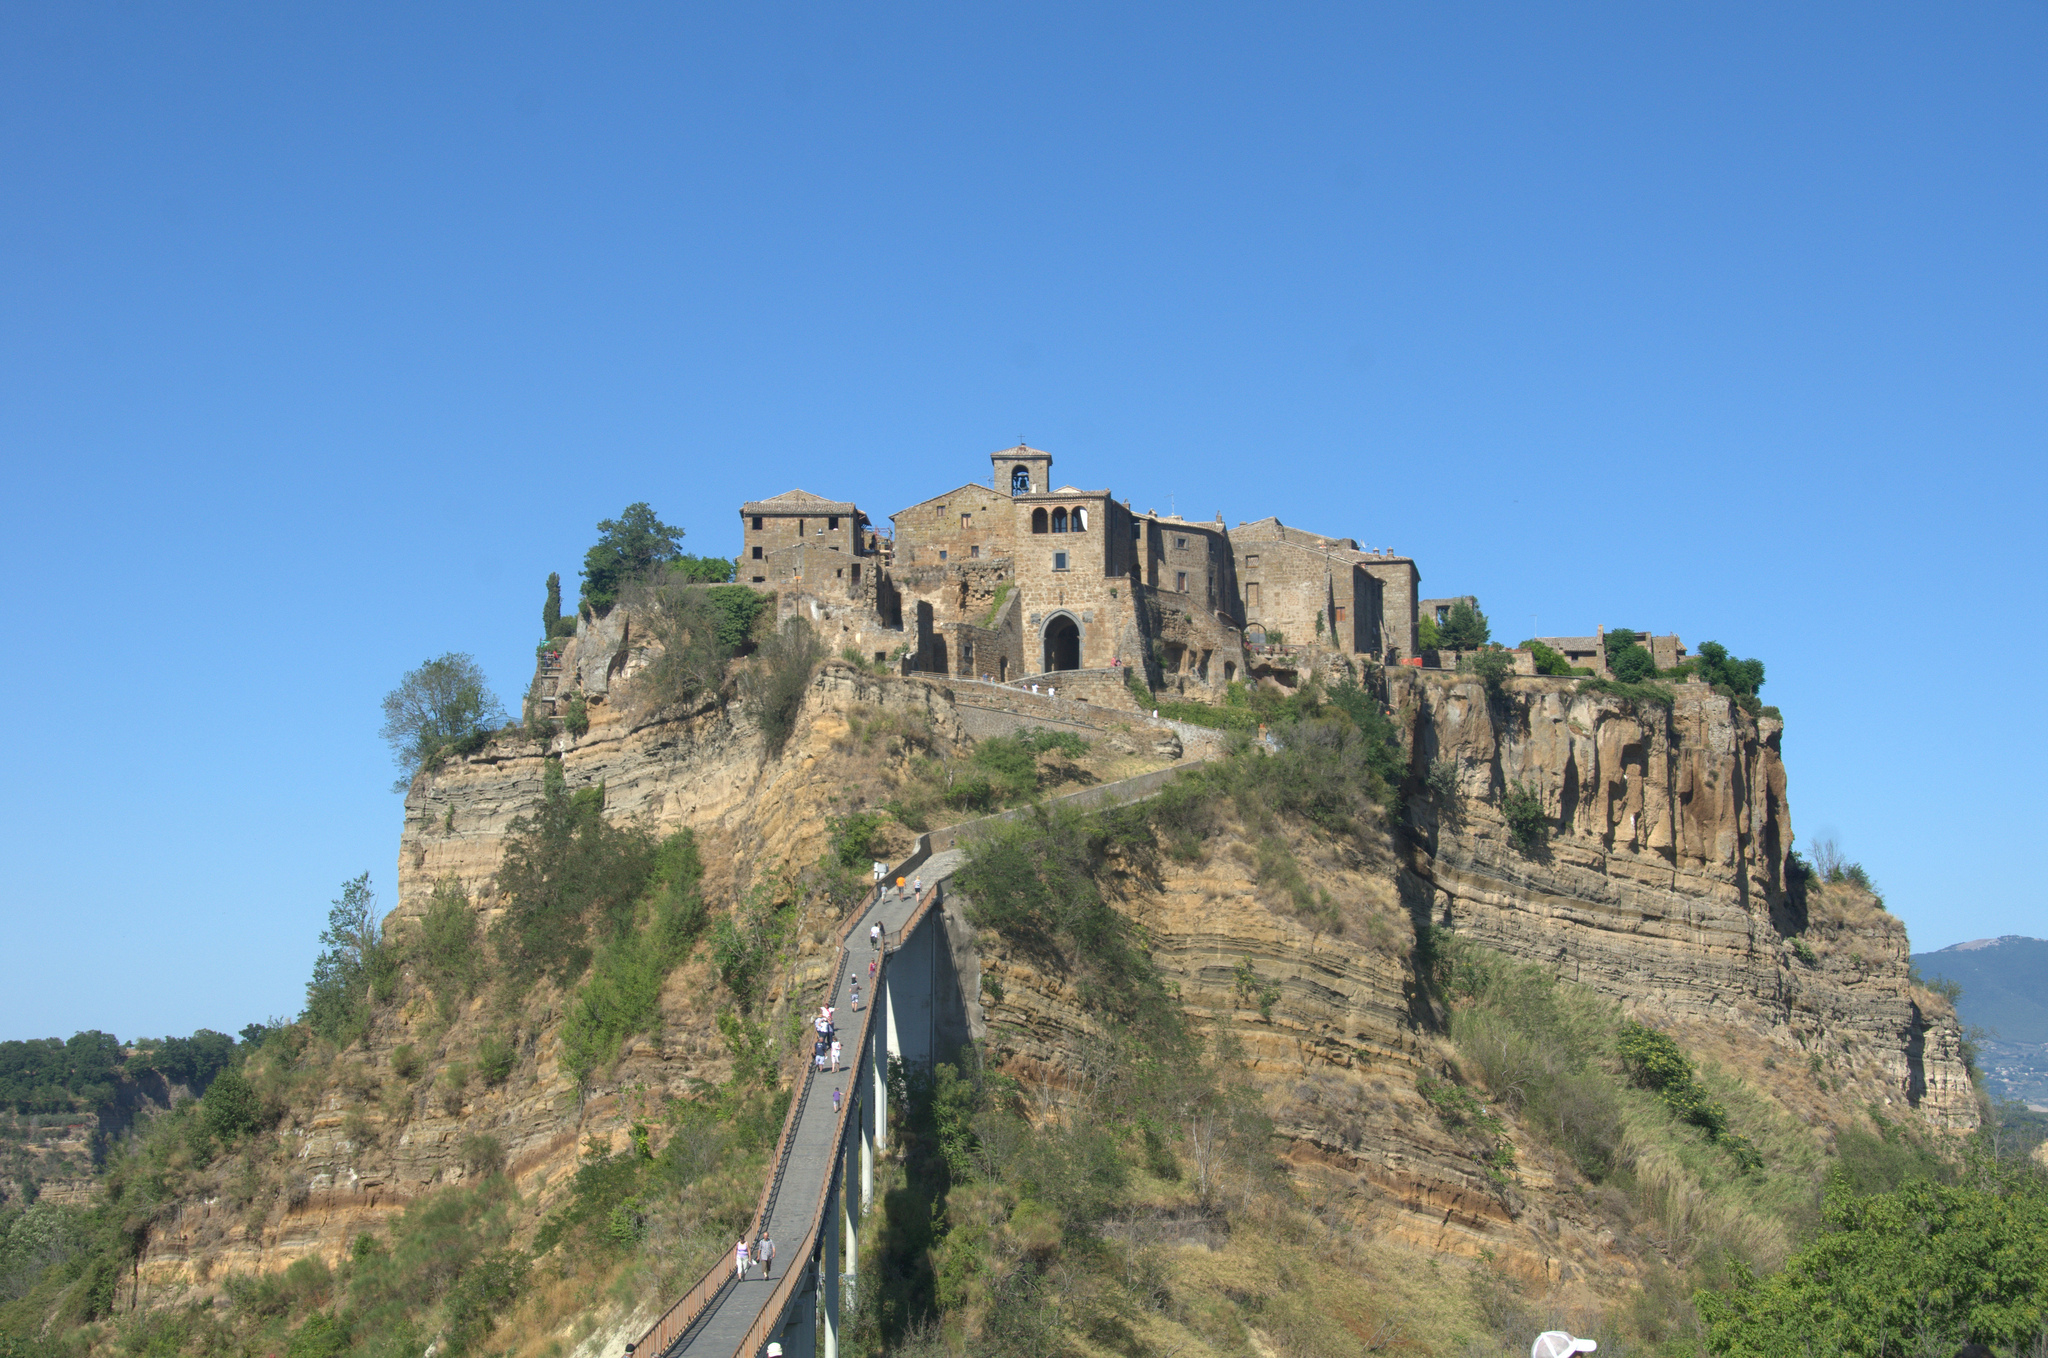 Civita di Bagnoregio, one of the most beautiful villages of Italy